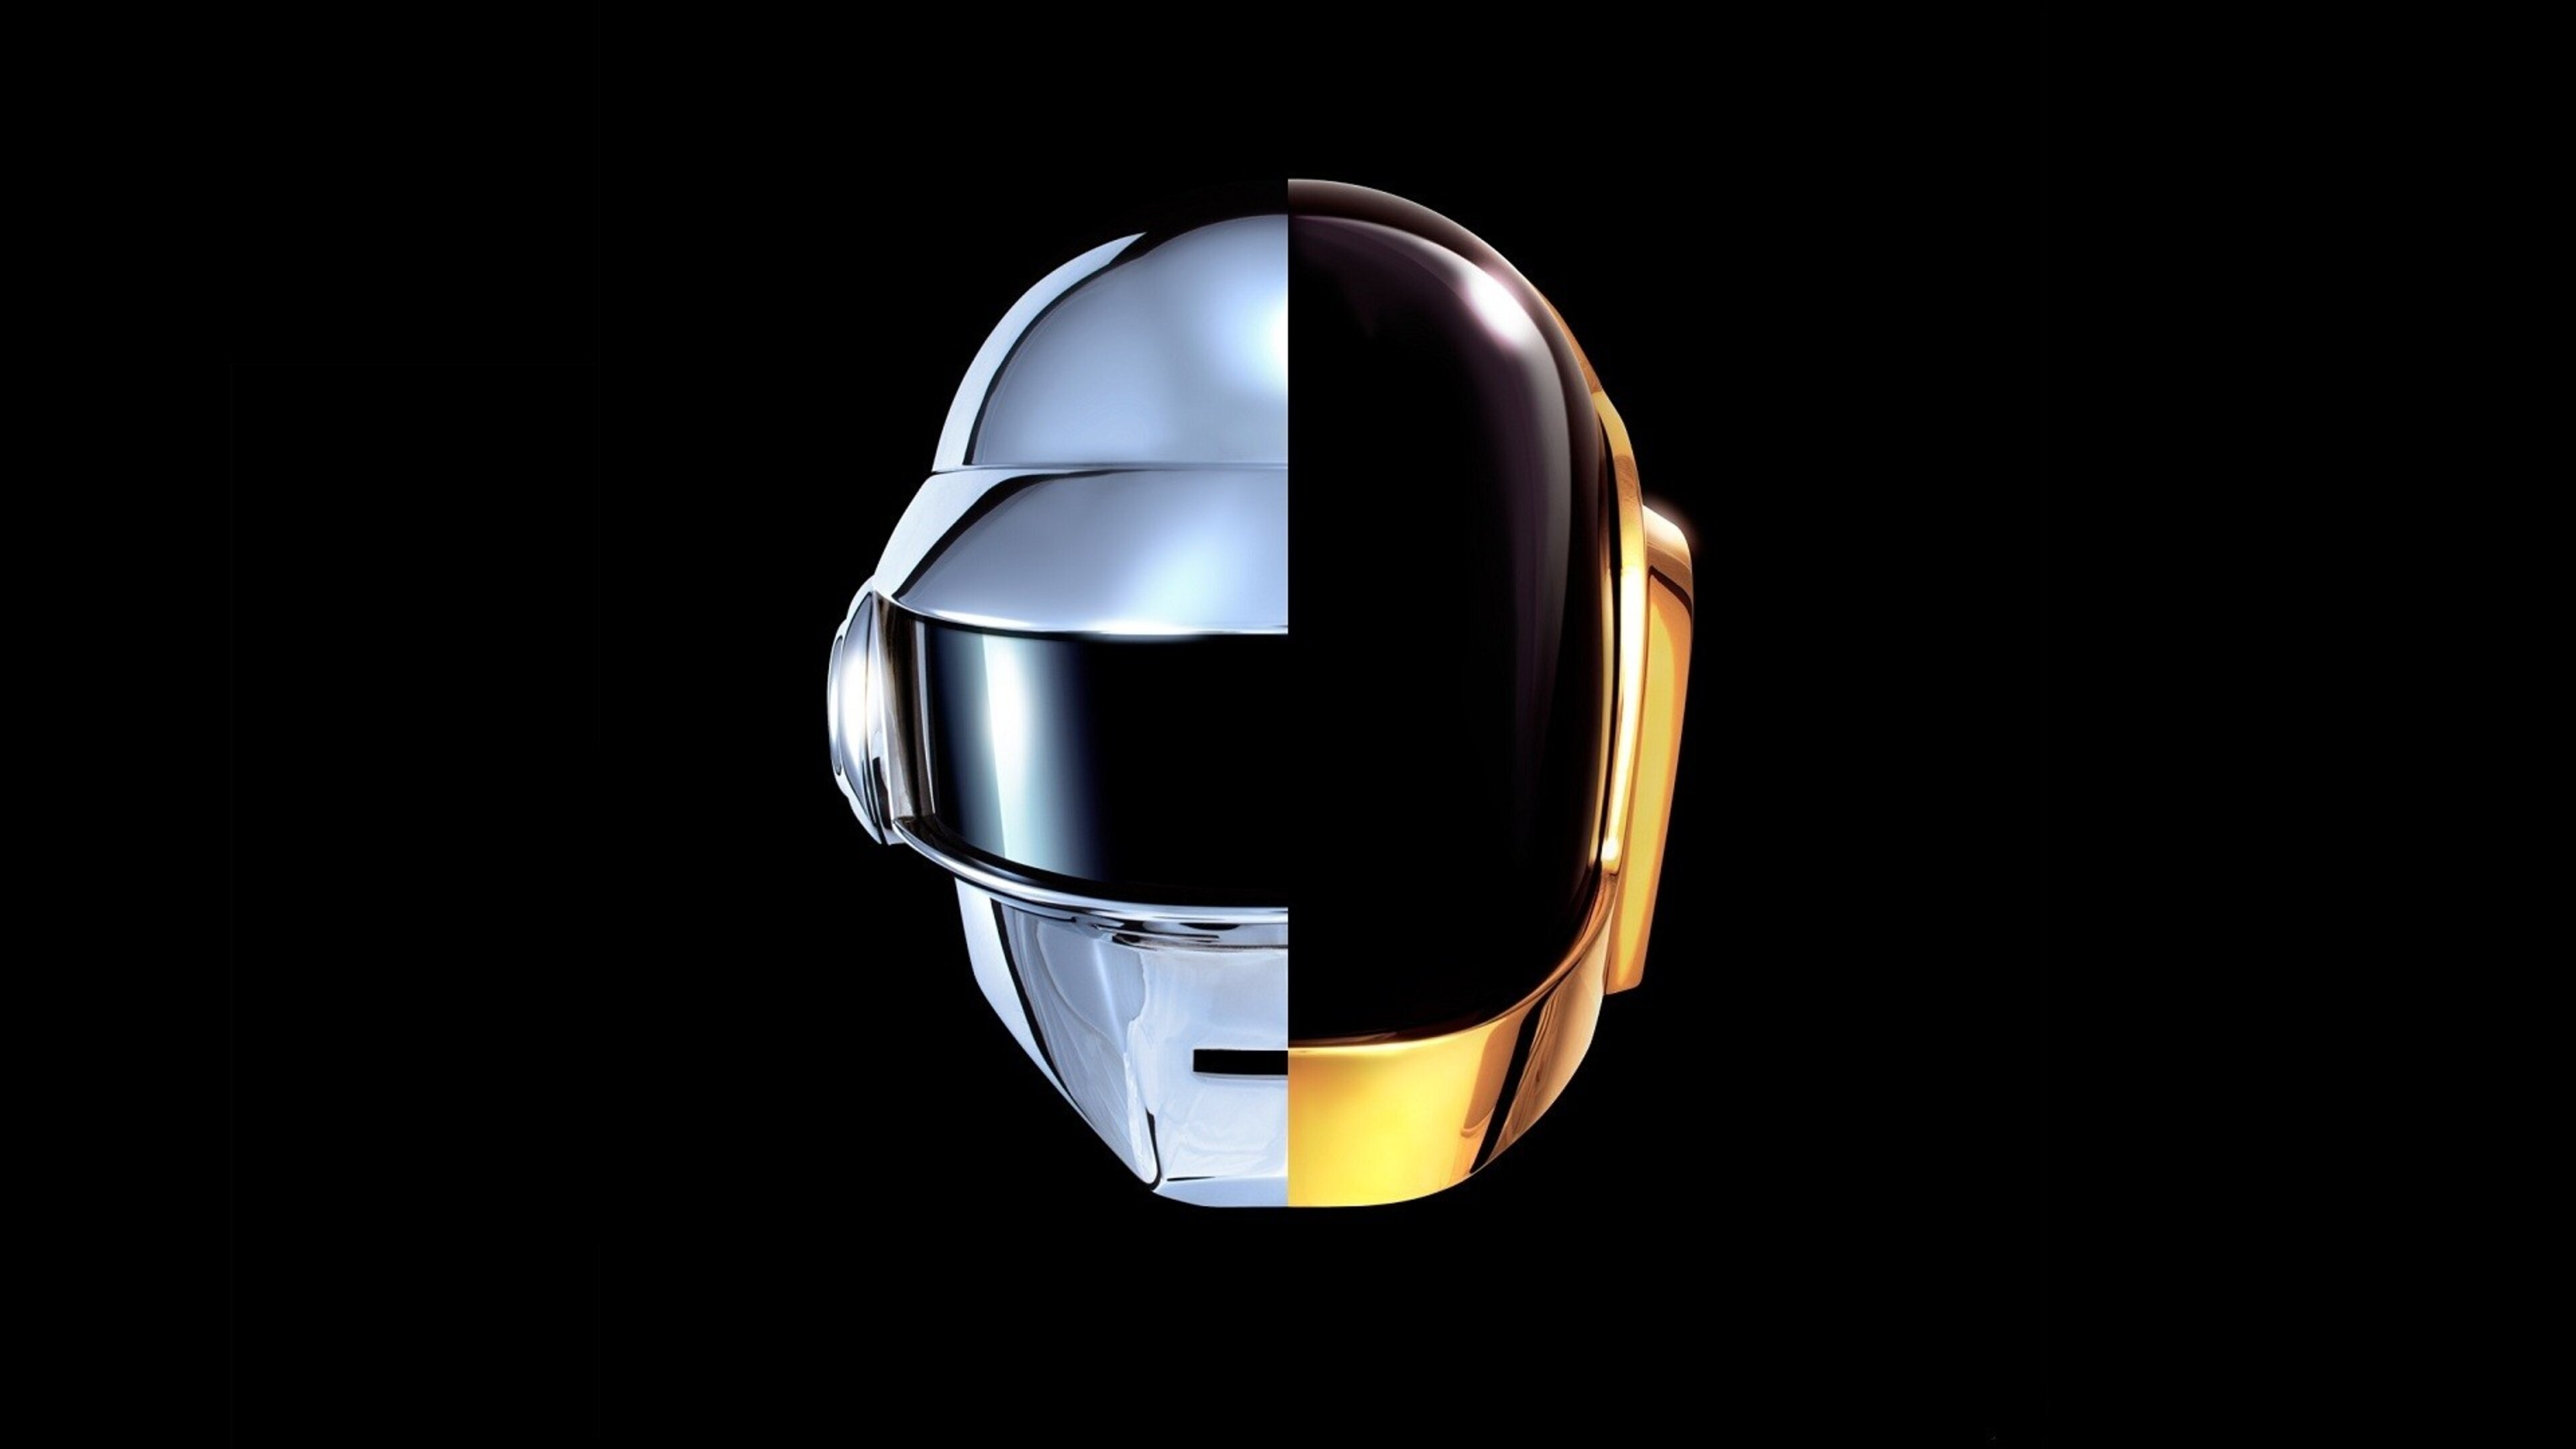 3840x2160 Daft Punk 4k HD 4k Wallpapers, Images ...